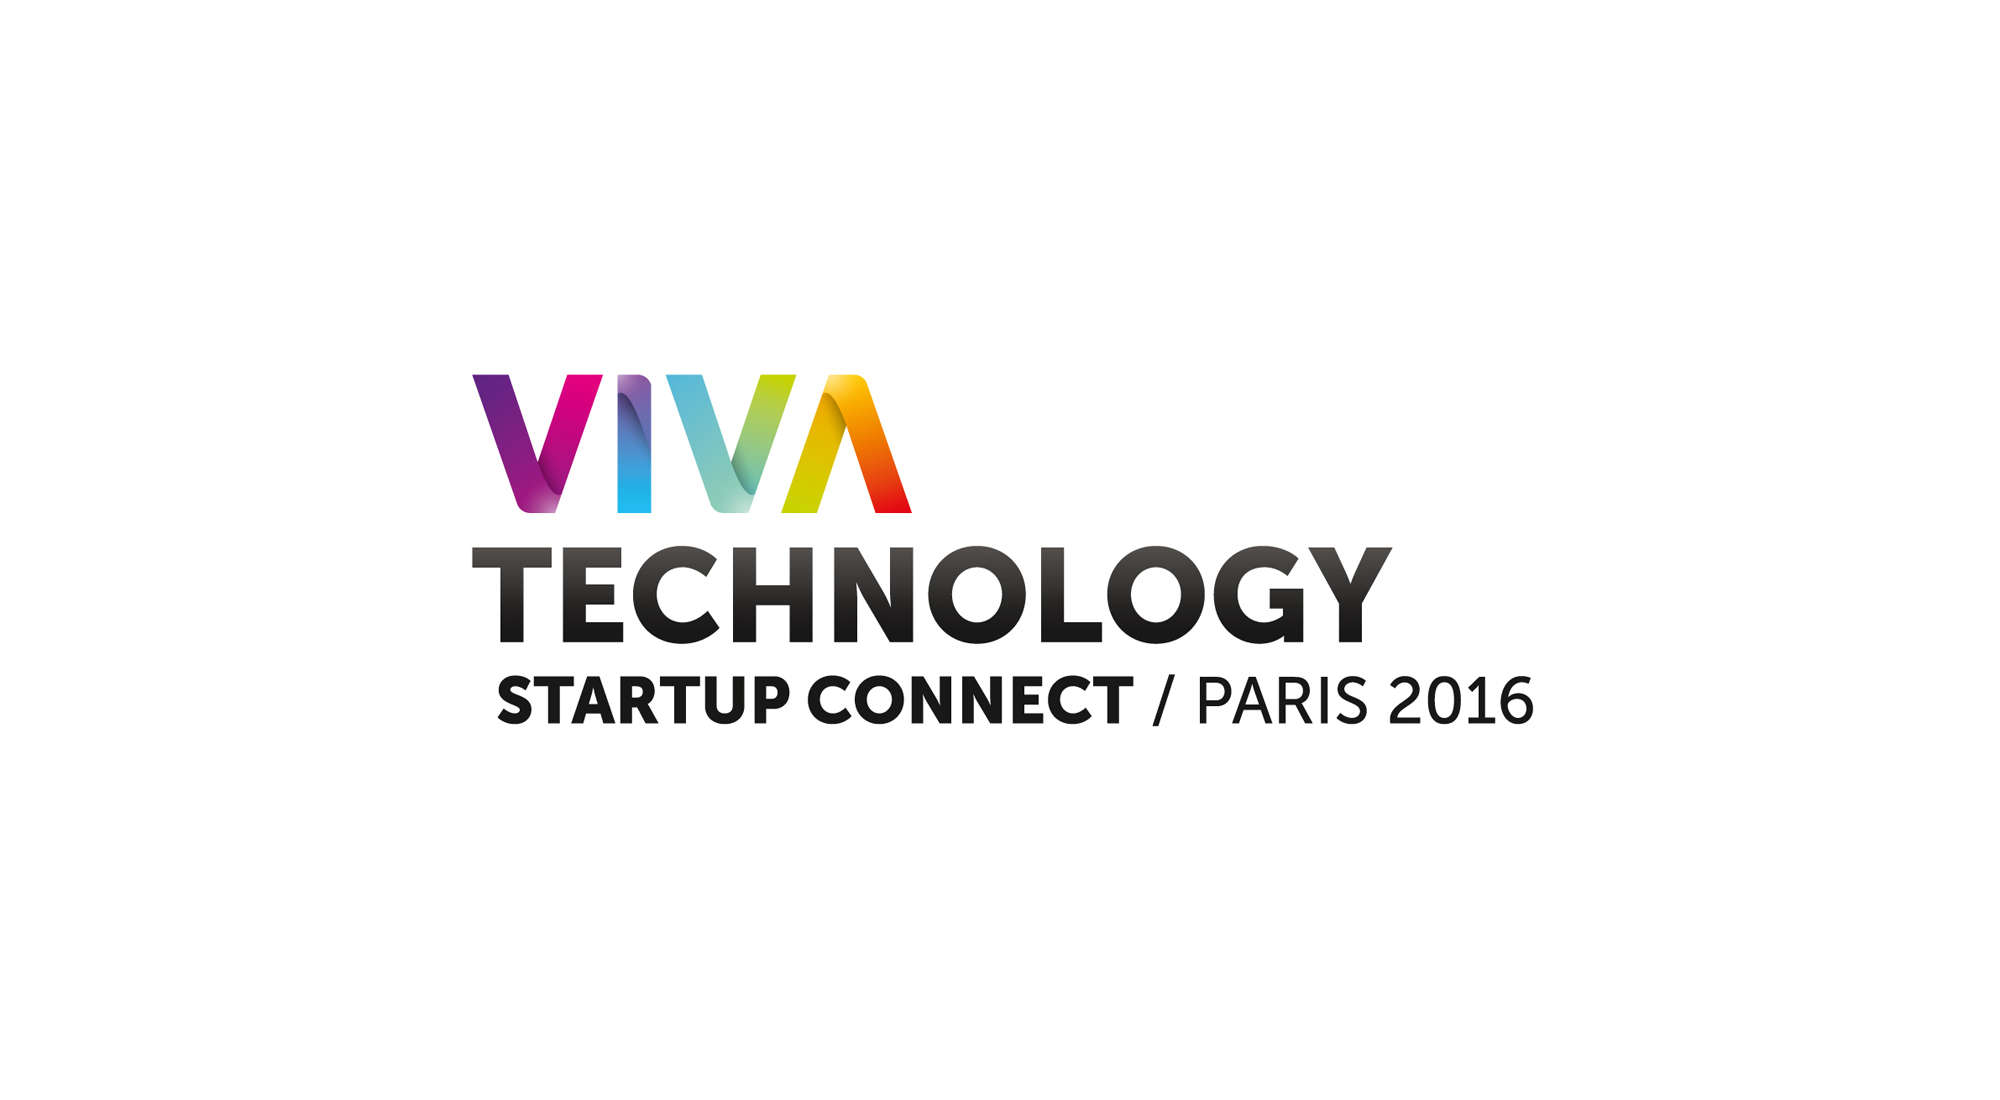 Viva Technology : 5 bonnes raisons pour aller au salon mondial de l'innovation digitale